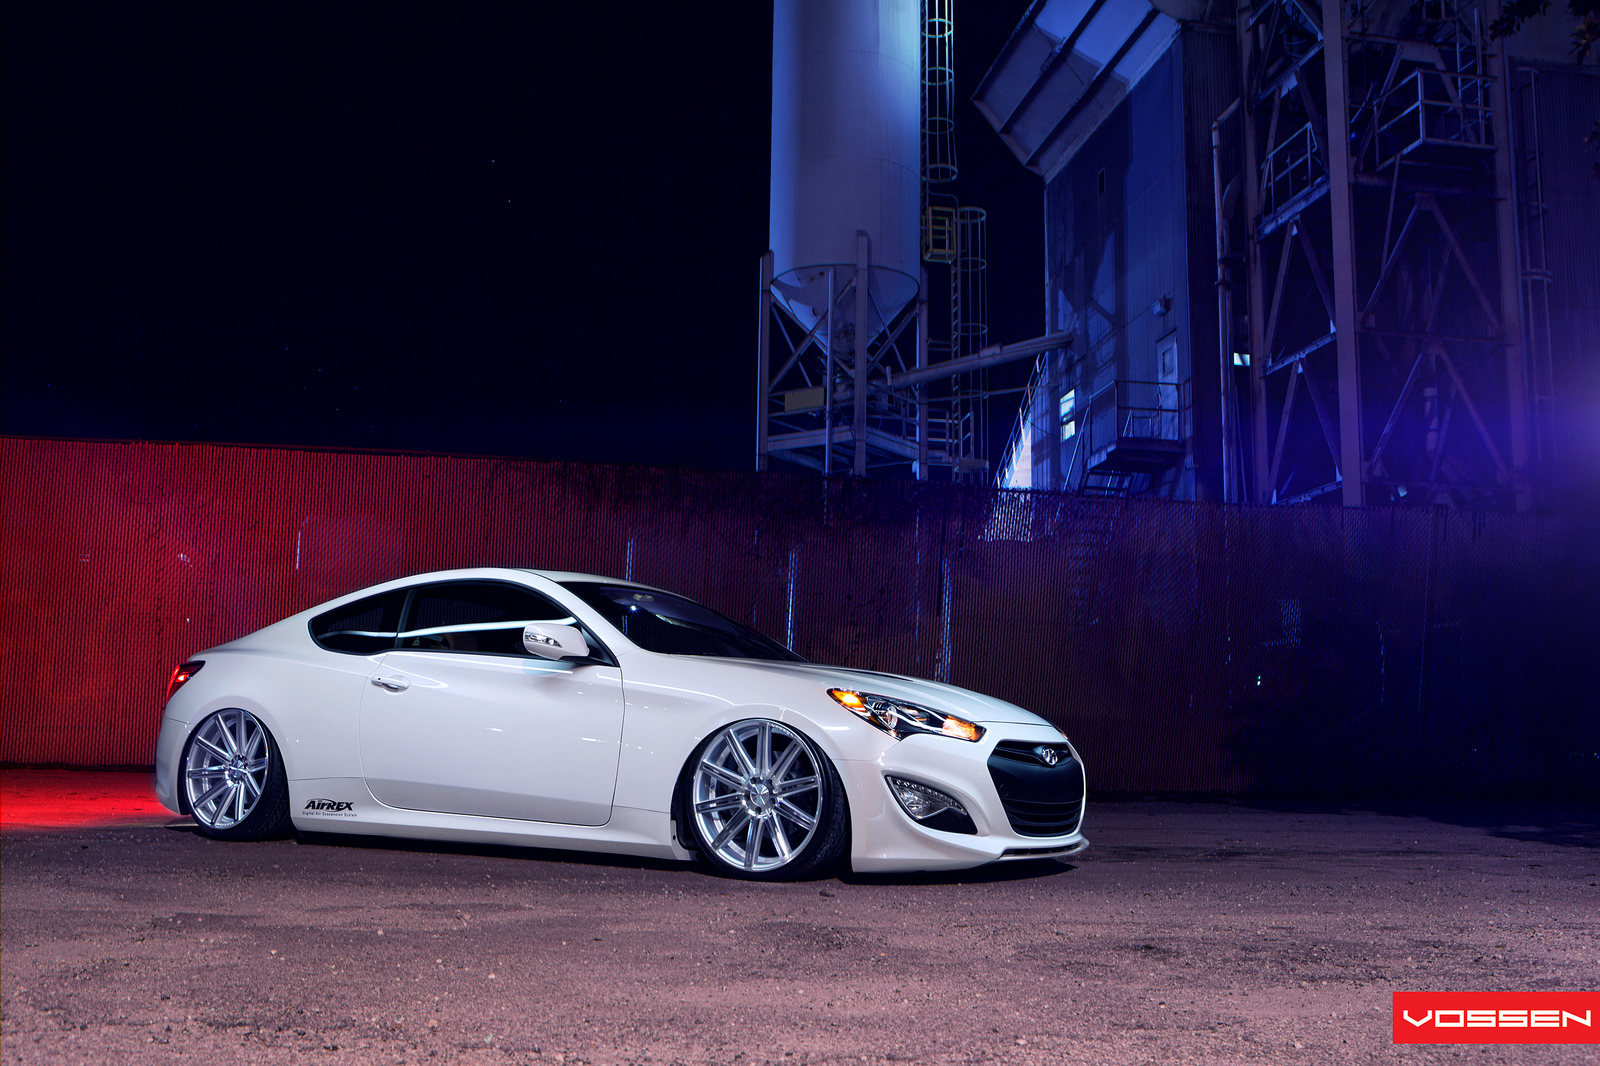 2013 Hyundai Genesis Coupe Unveiled With Awesome New ...